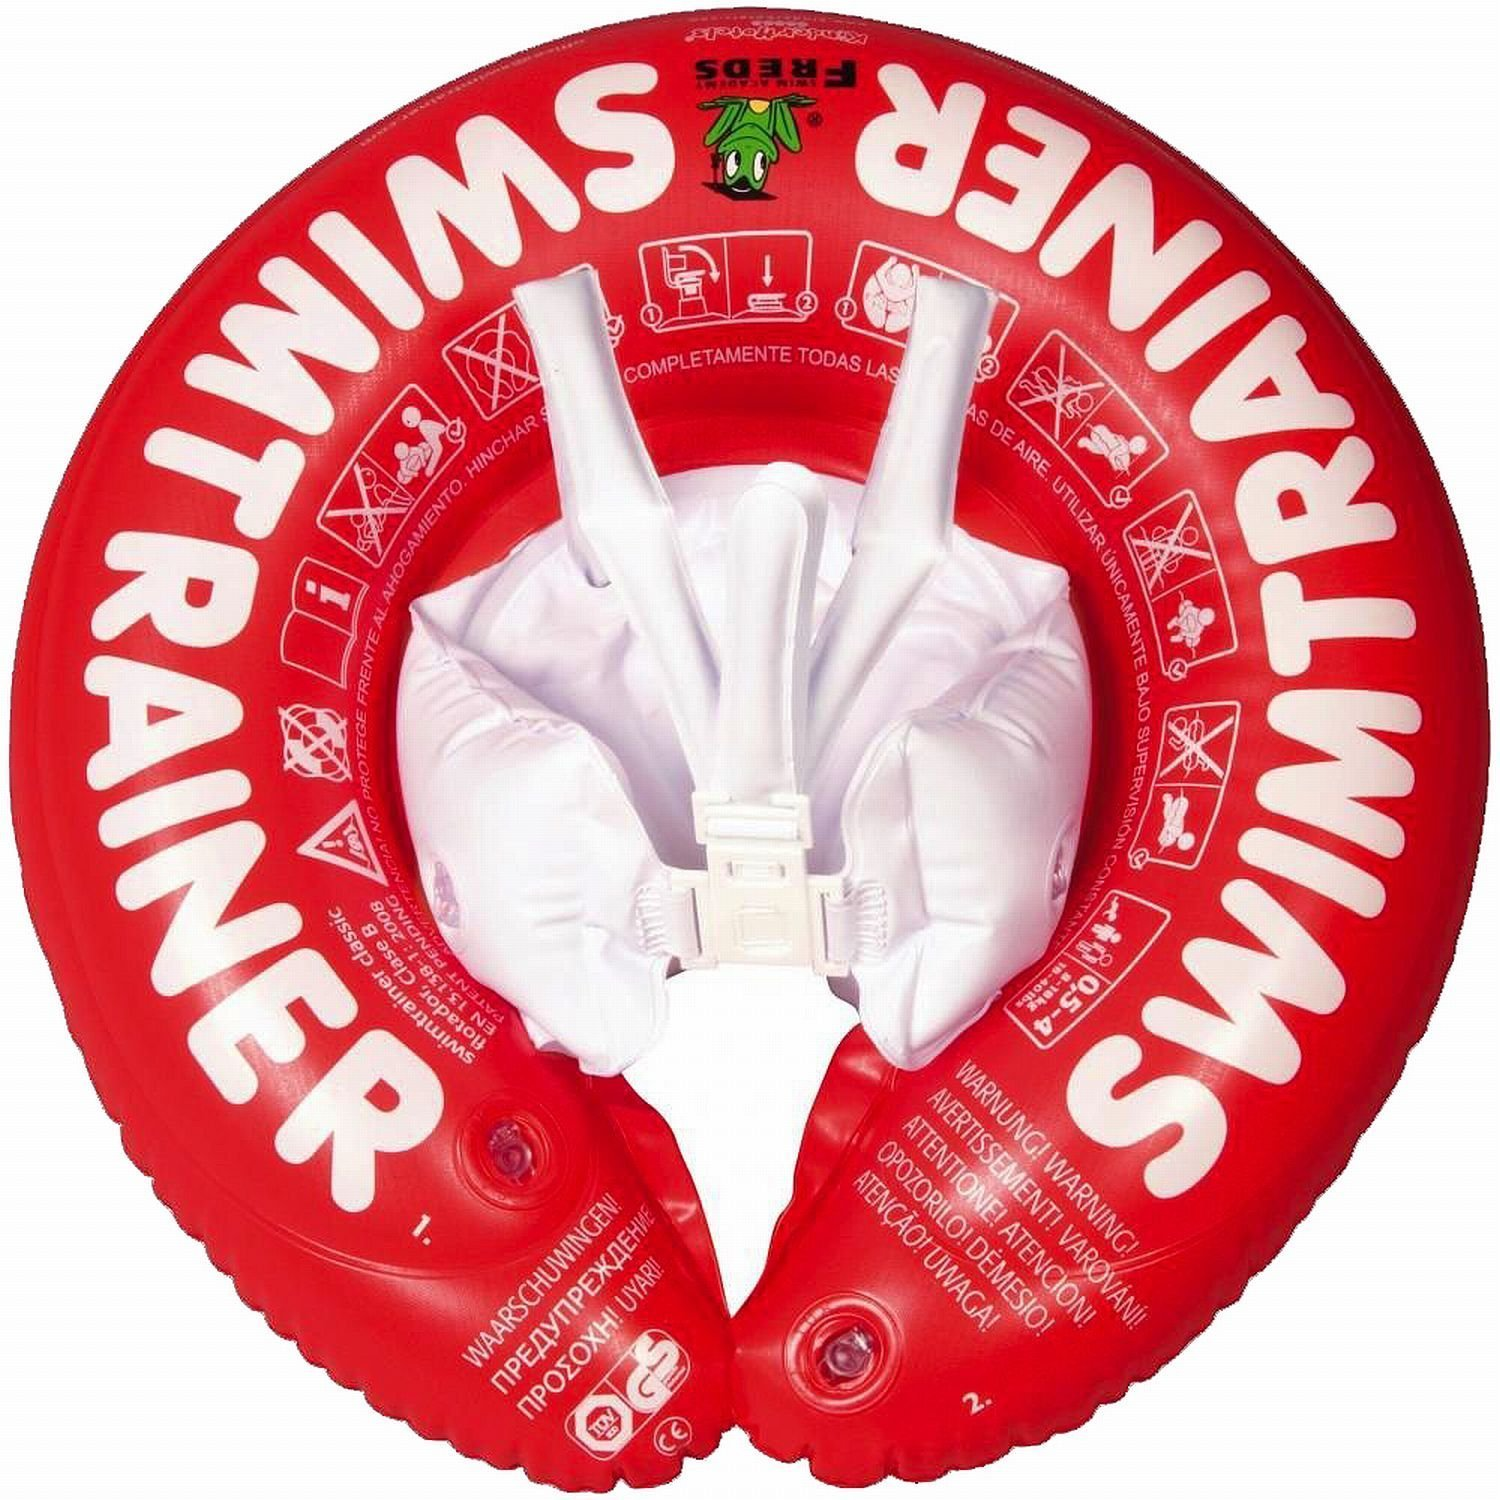 FREDS SWIM ACADEMY 10102 SwimTrainer Classic - Red (3 months - 4 years)